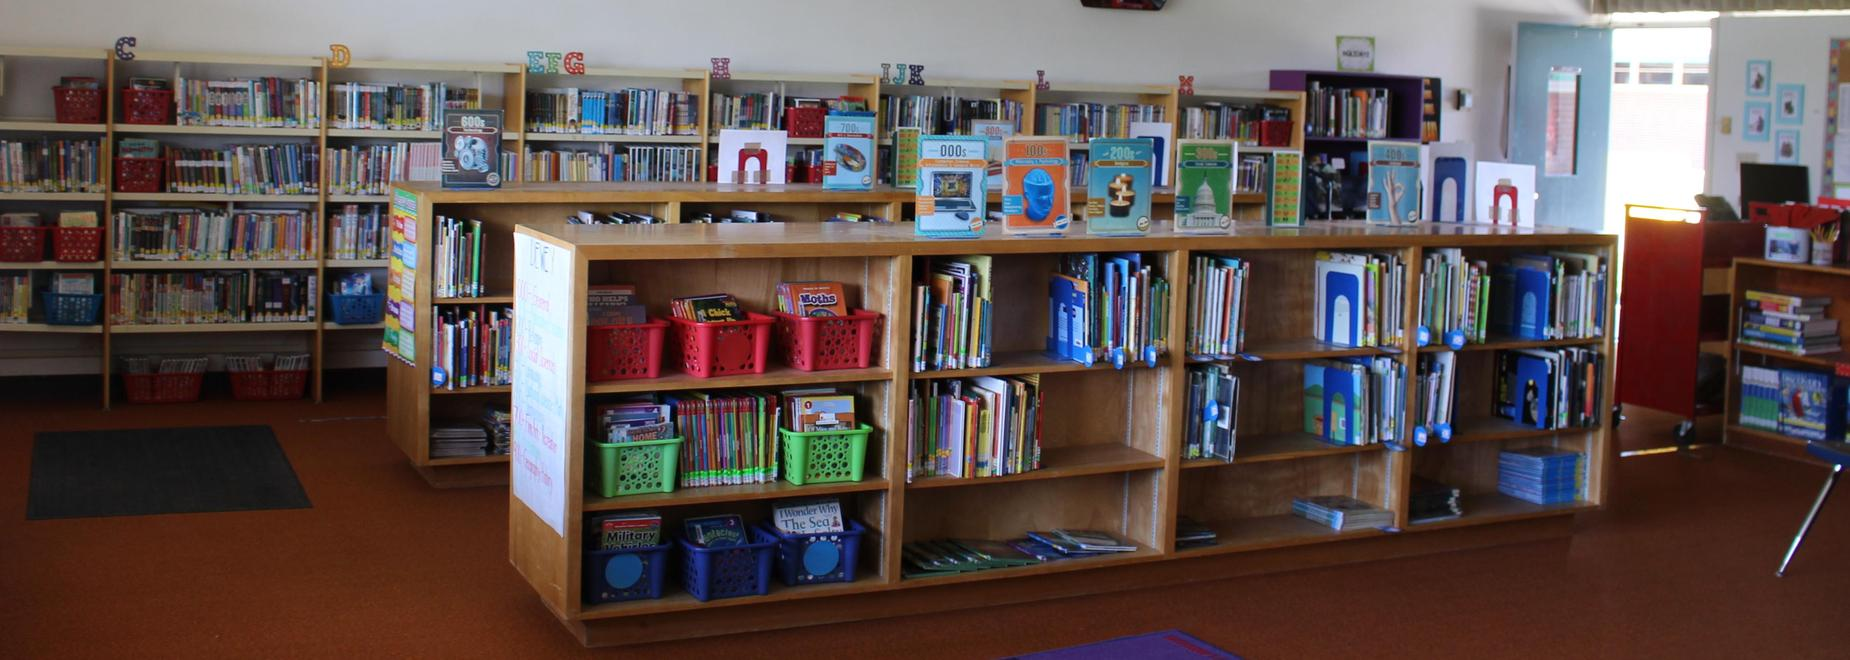 Summitview Elementary Library